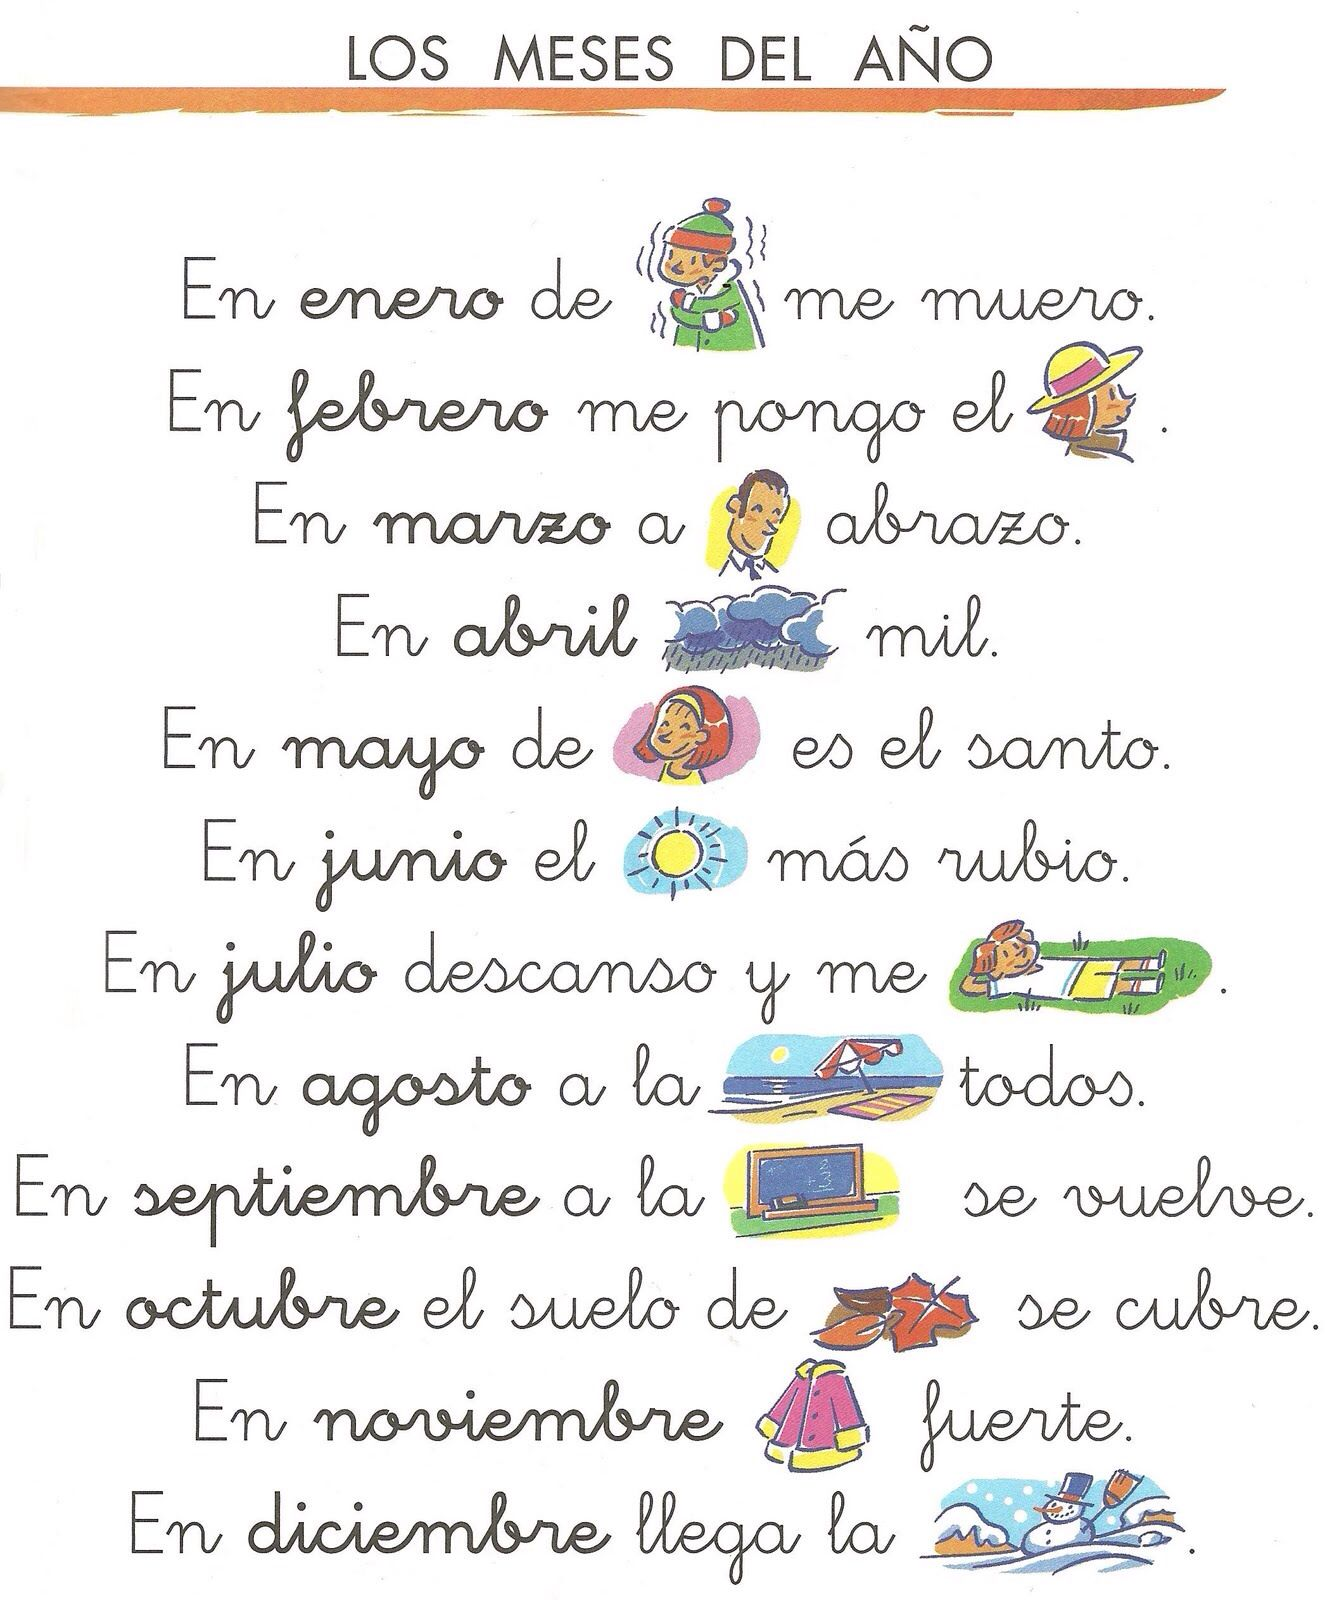 Pin de Tori Arevalo Agrela en Ideas cole | Pinterest | Poesía ...